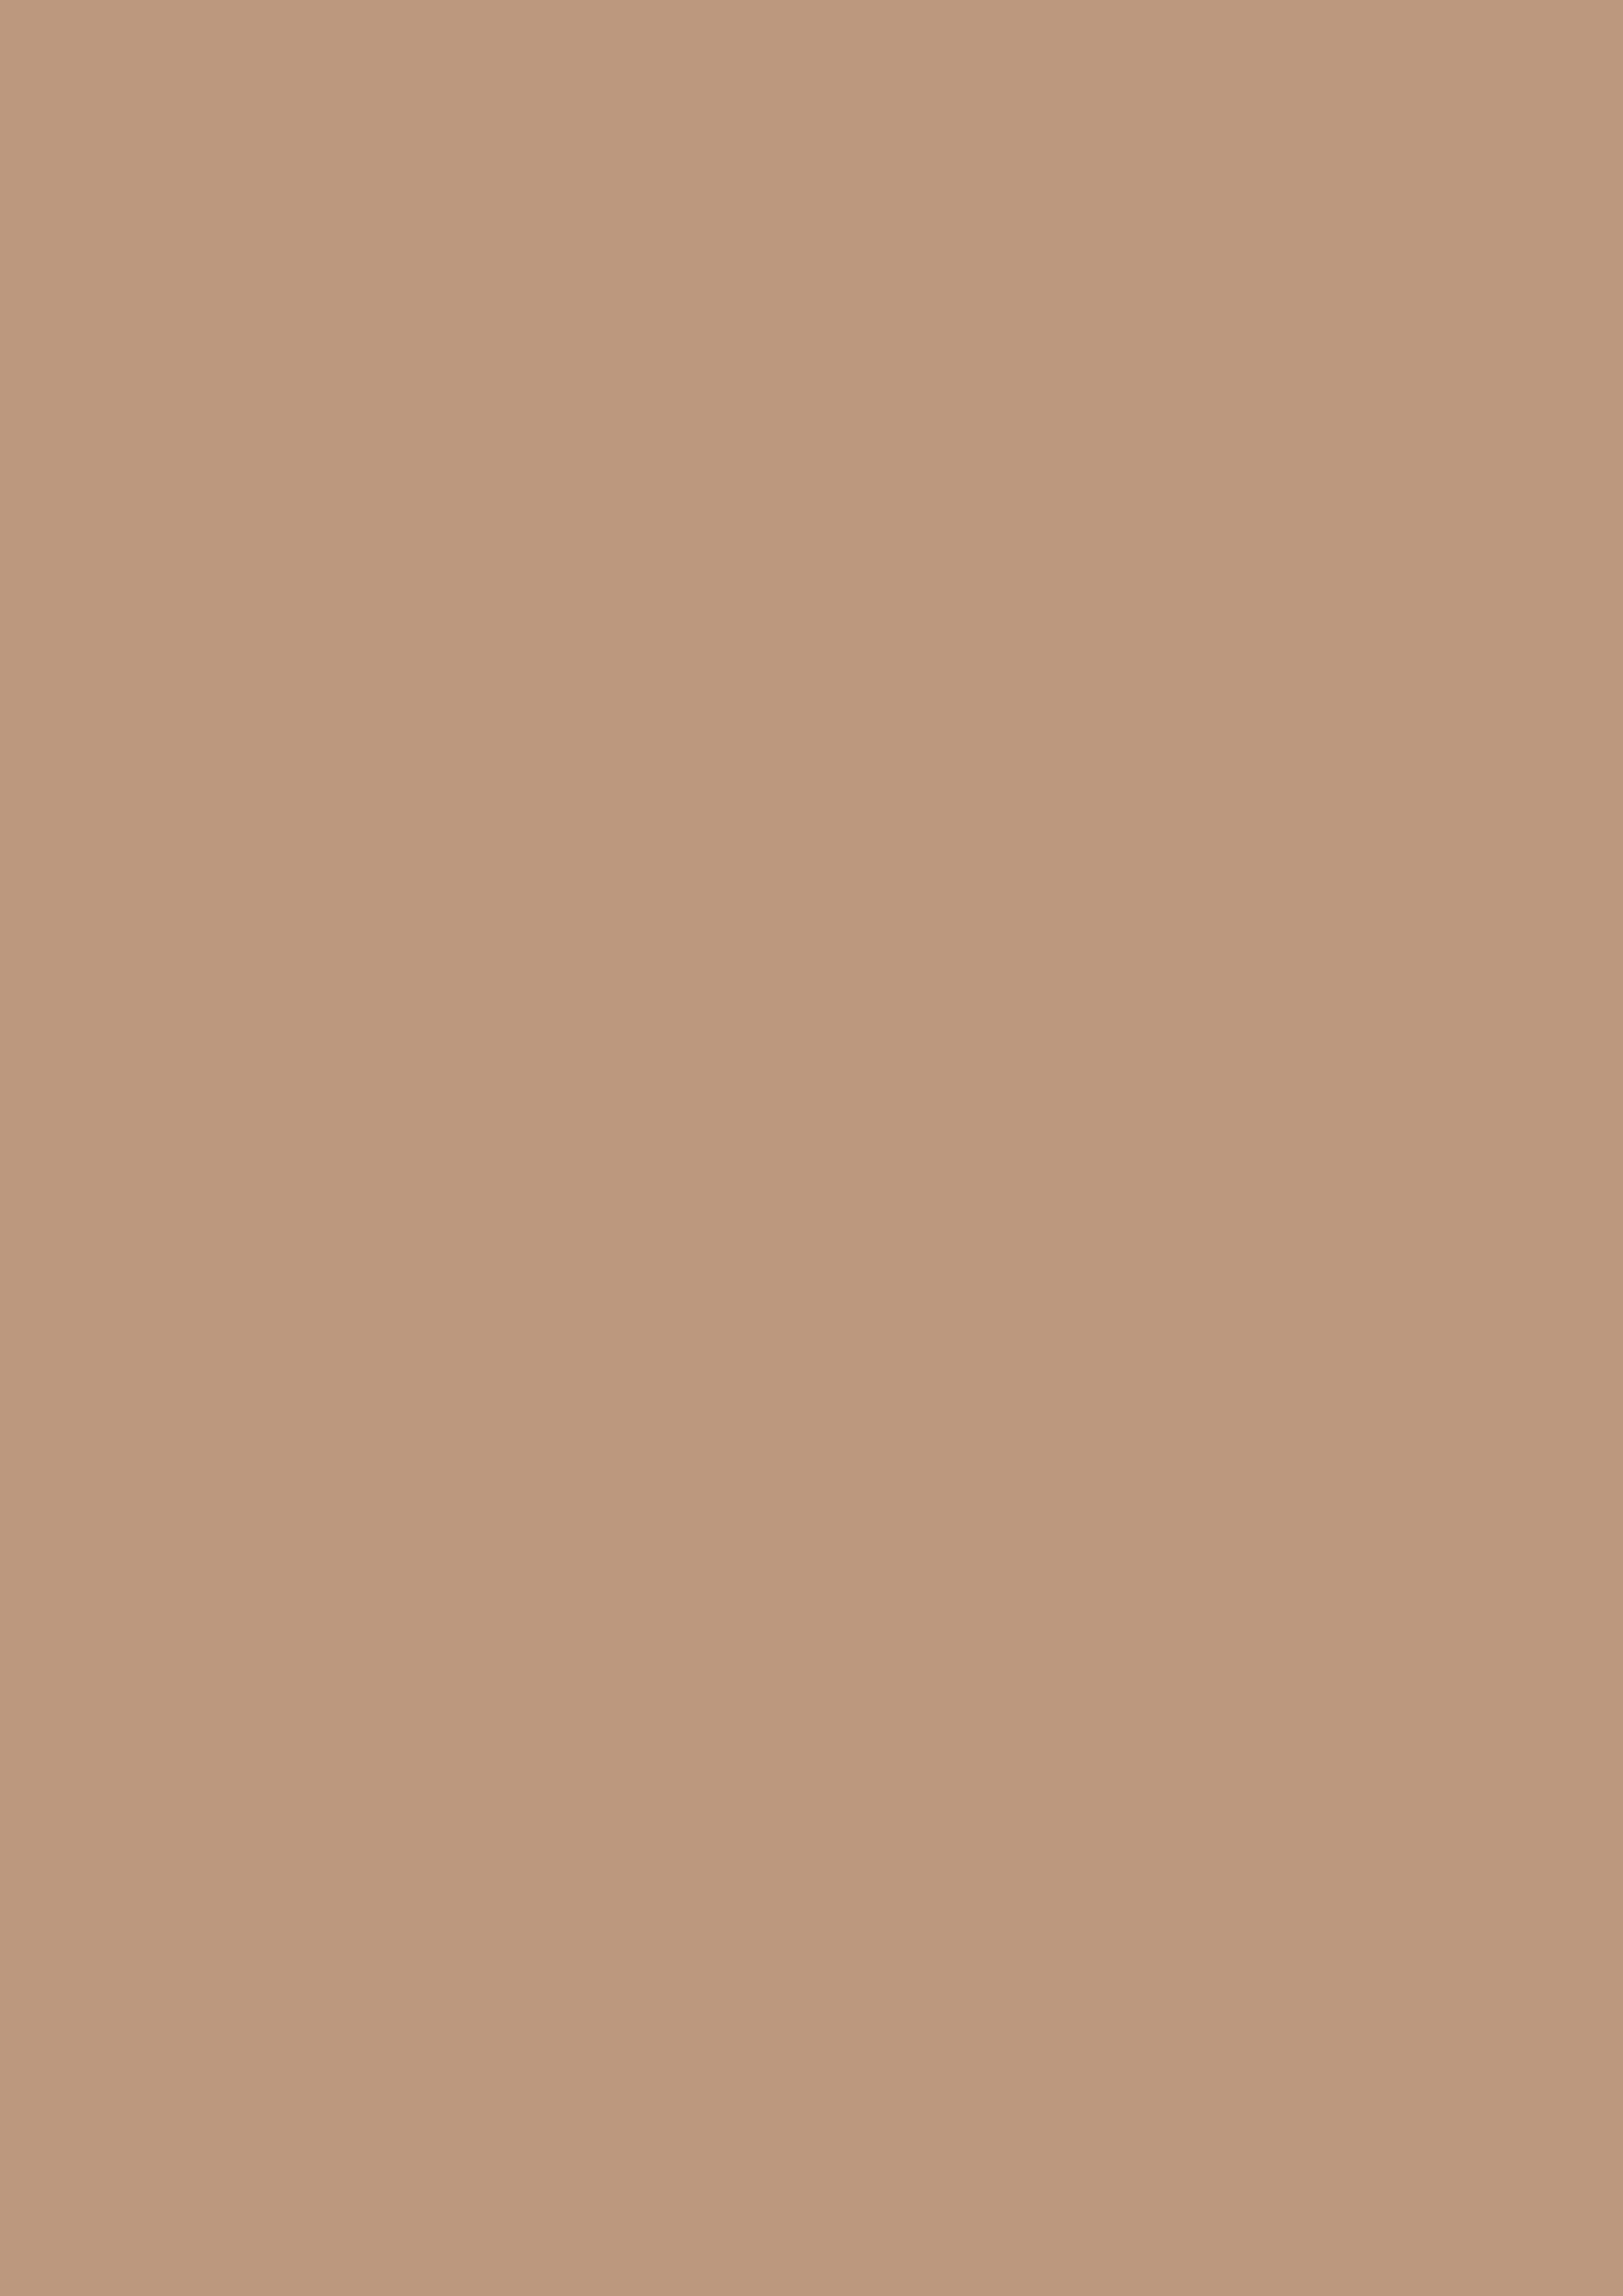 2480x3508 Pale Taupe Solid Color Background